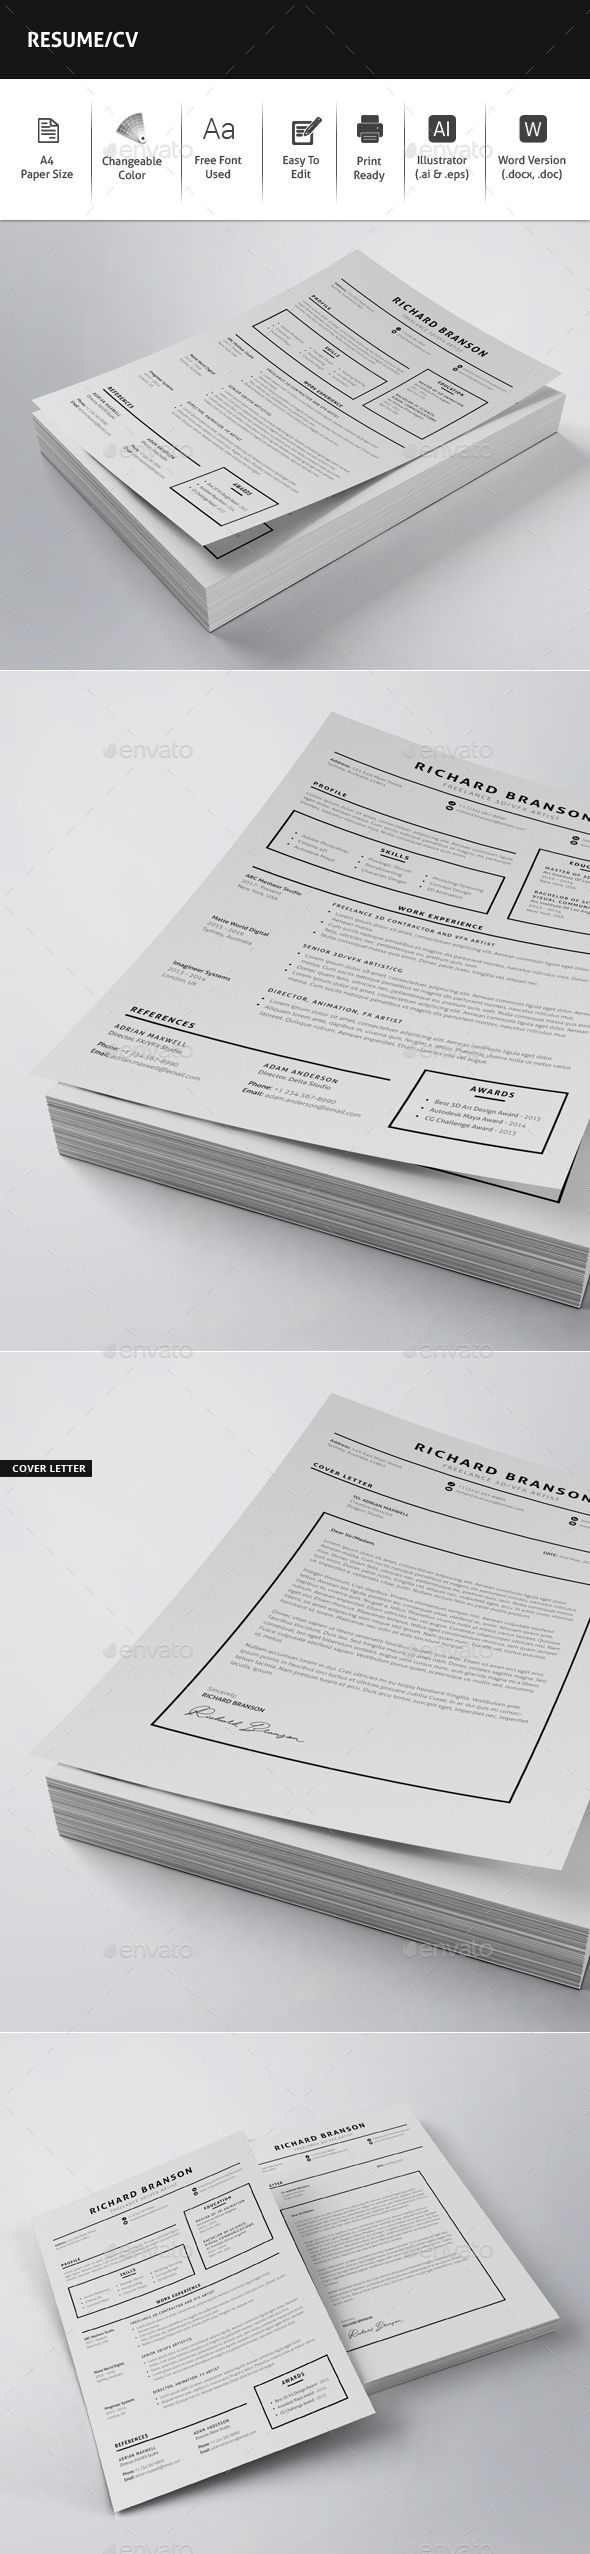 Resume Template Download%0A Resume CV